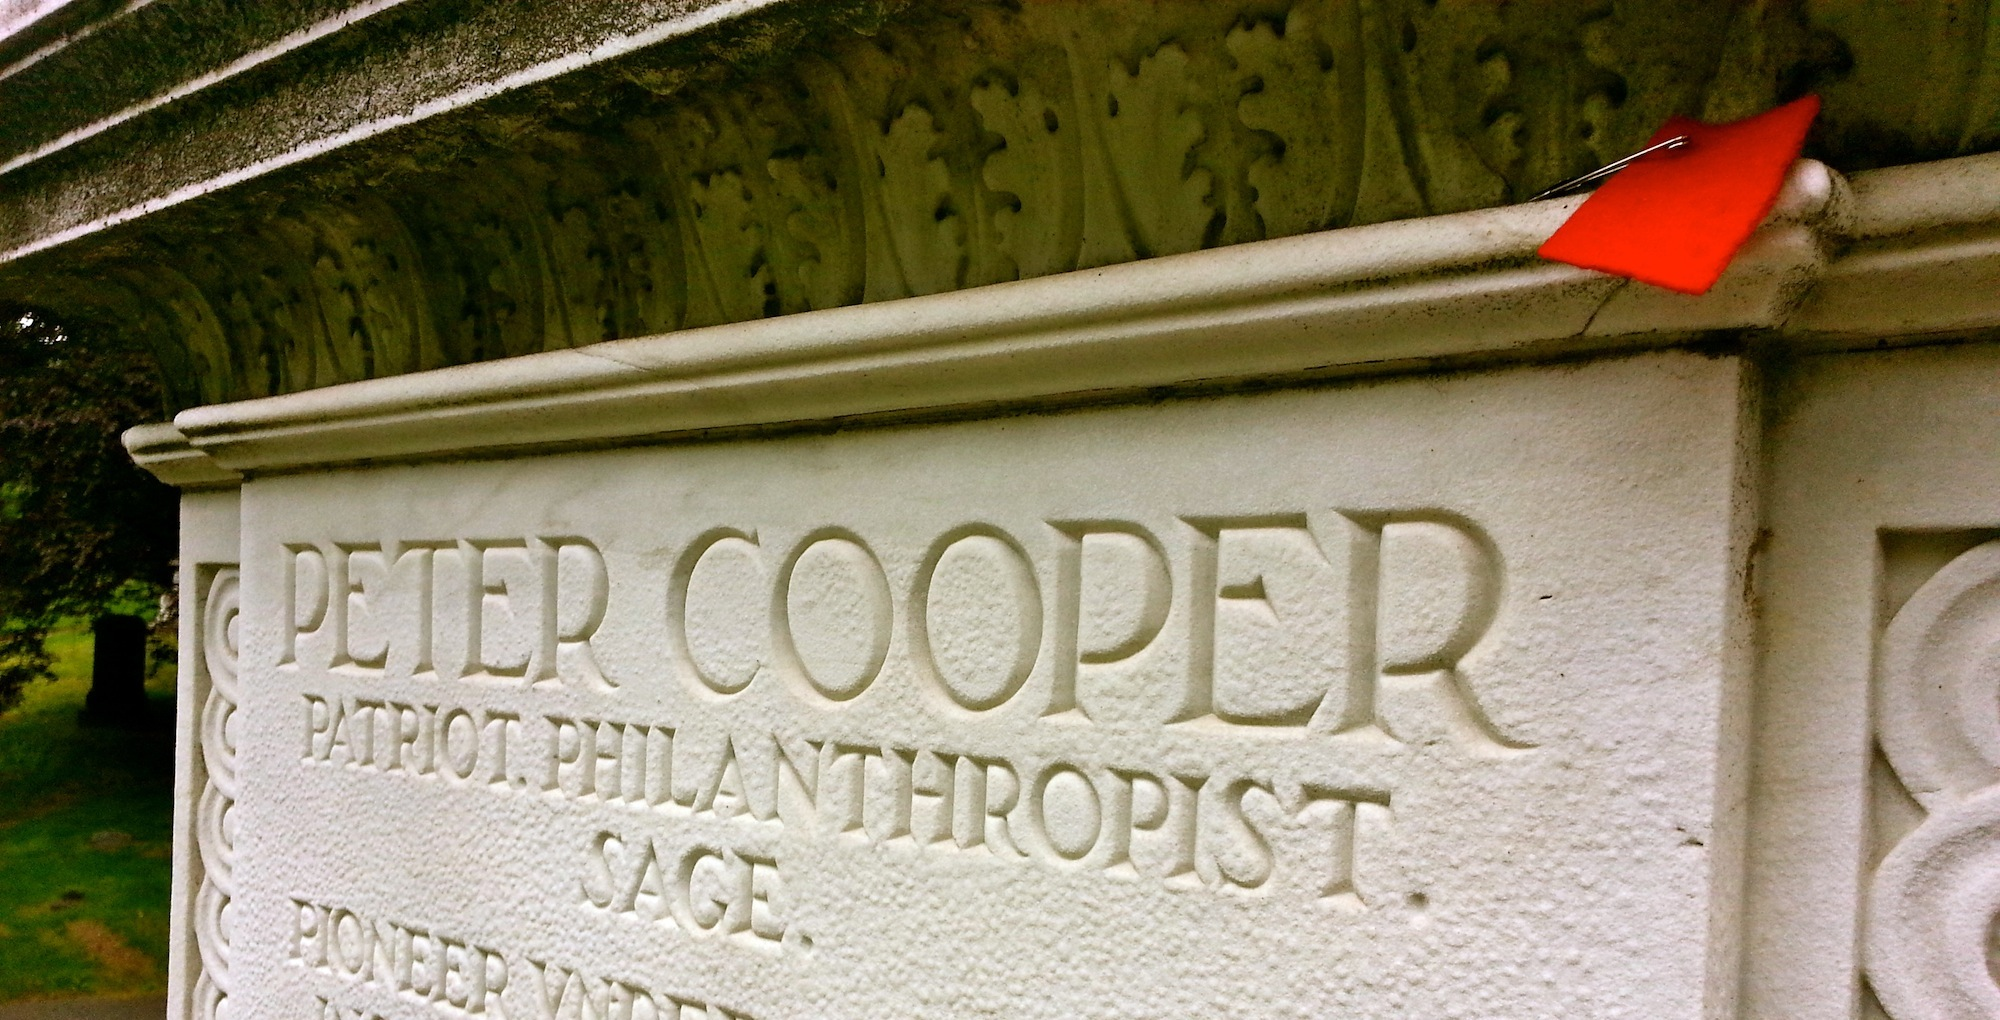 The grave of Peter Cooper, founder of Cooper Union College, with a red solidarity square placed upon it. Photo: Justin Wedes